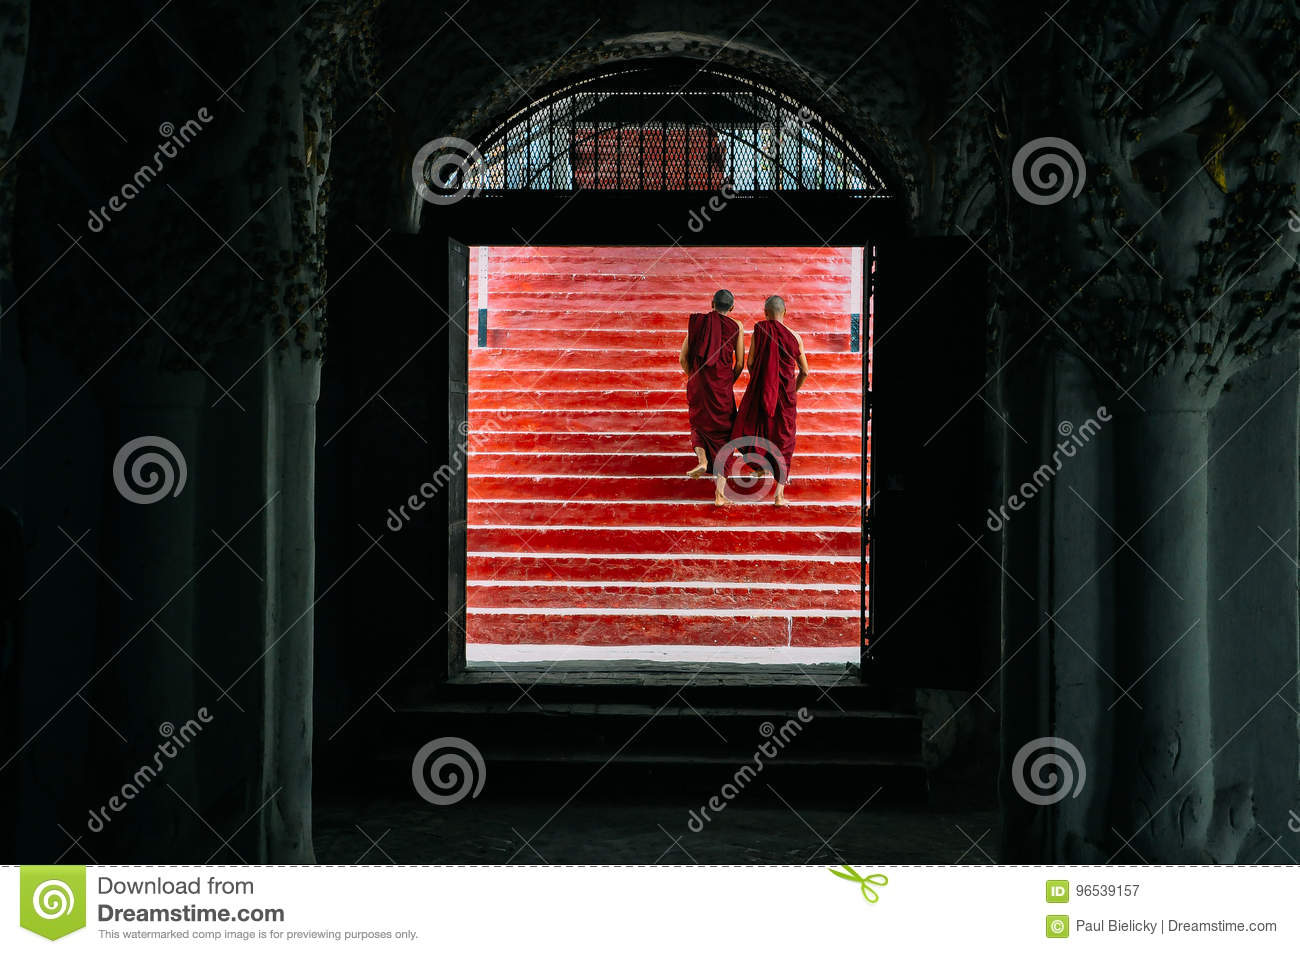 2 monks walking up stairs in Mandalay.